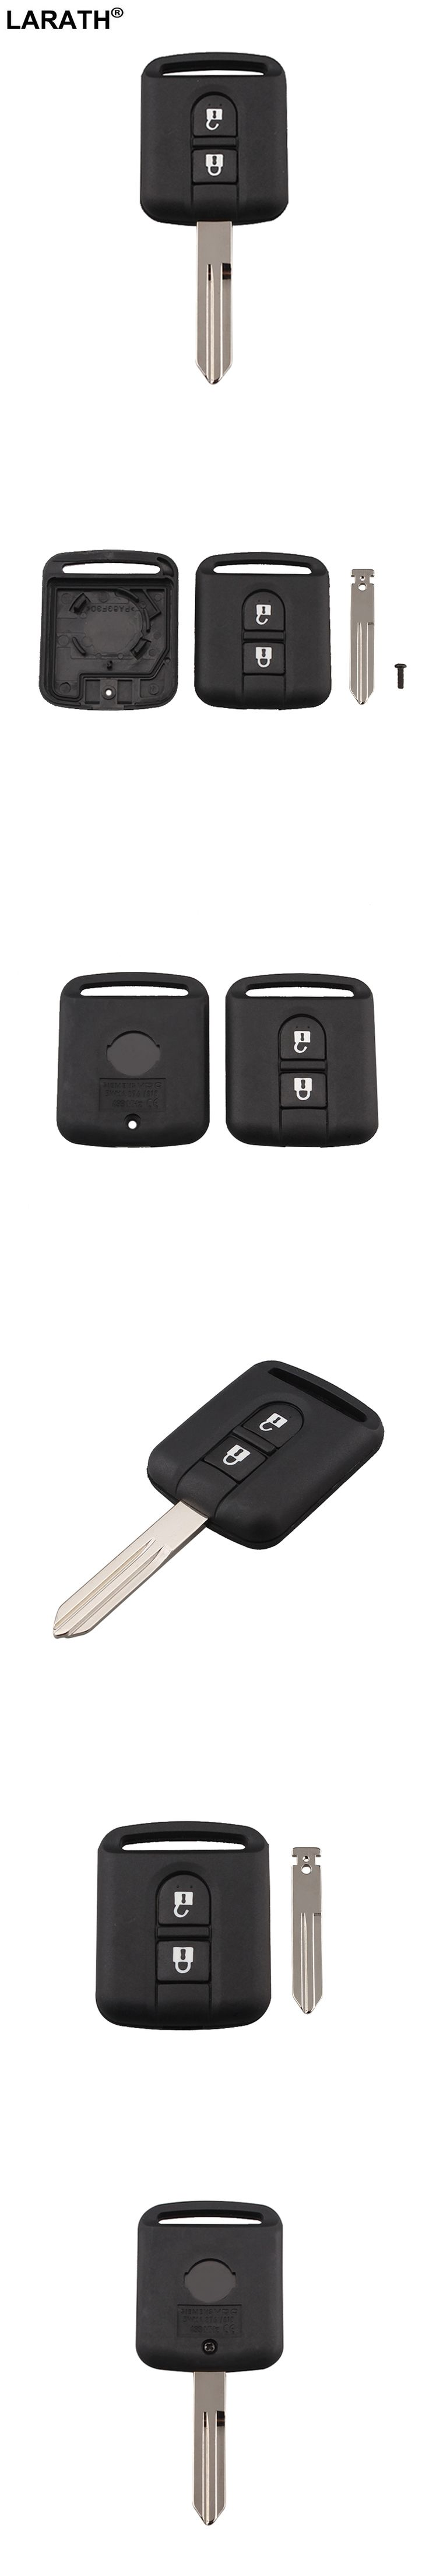 LARATH New Replacement 2 Button Remote Car Key Shell Case Fob Keyless Entry For Nissan Navara Pathfinder 2005 - 2014 With Blade